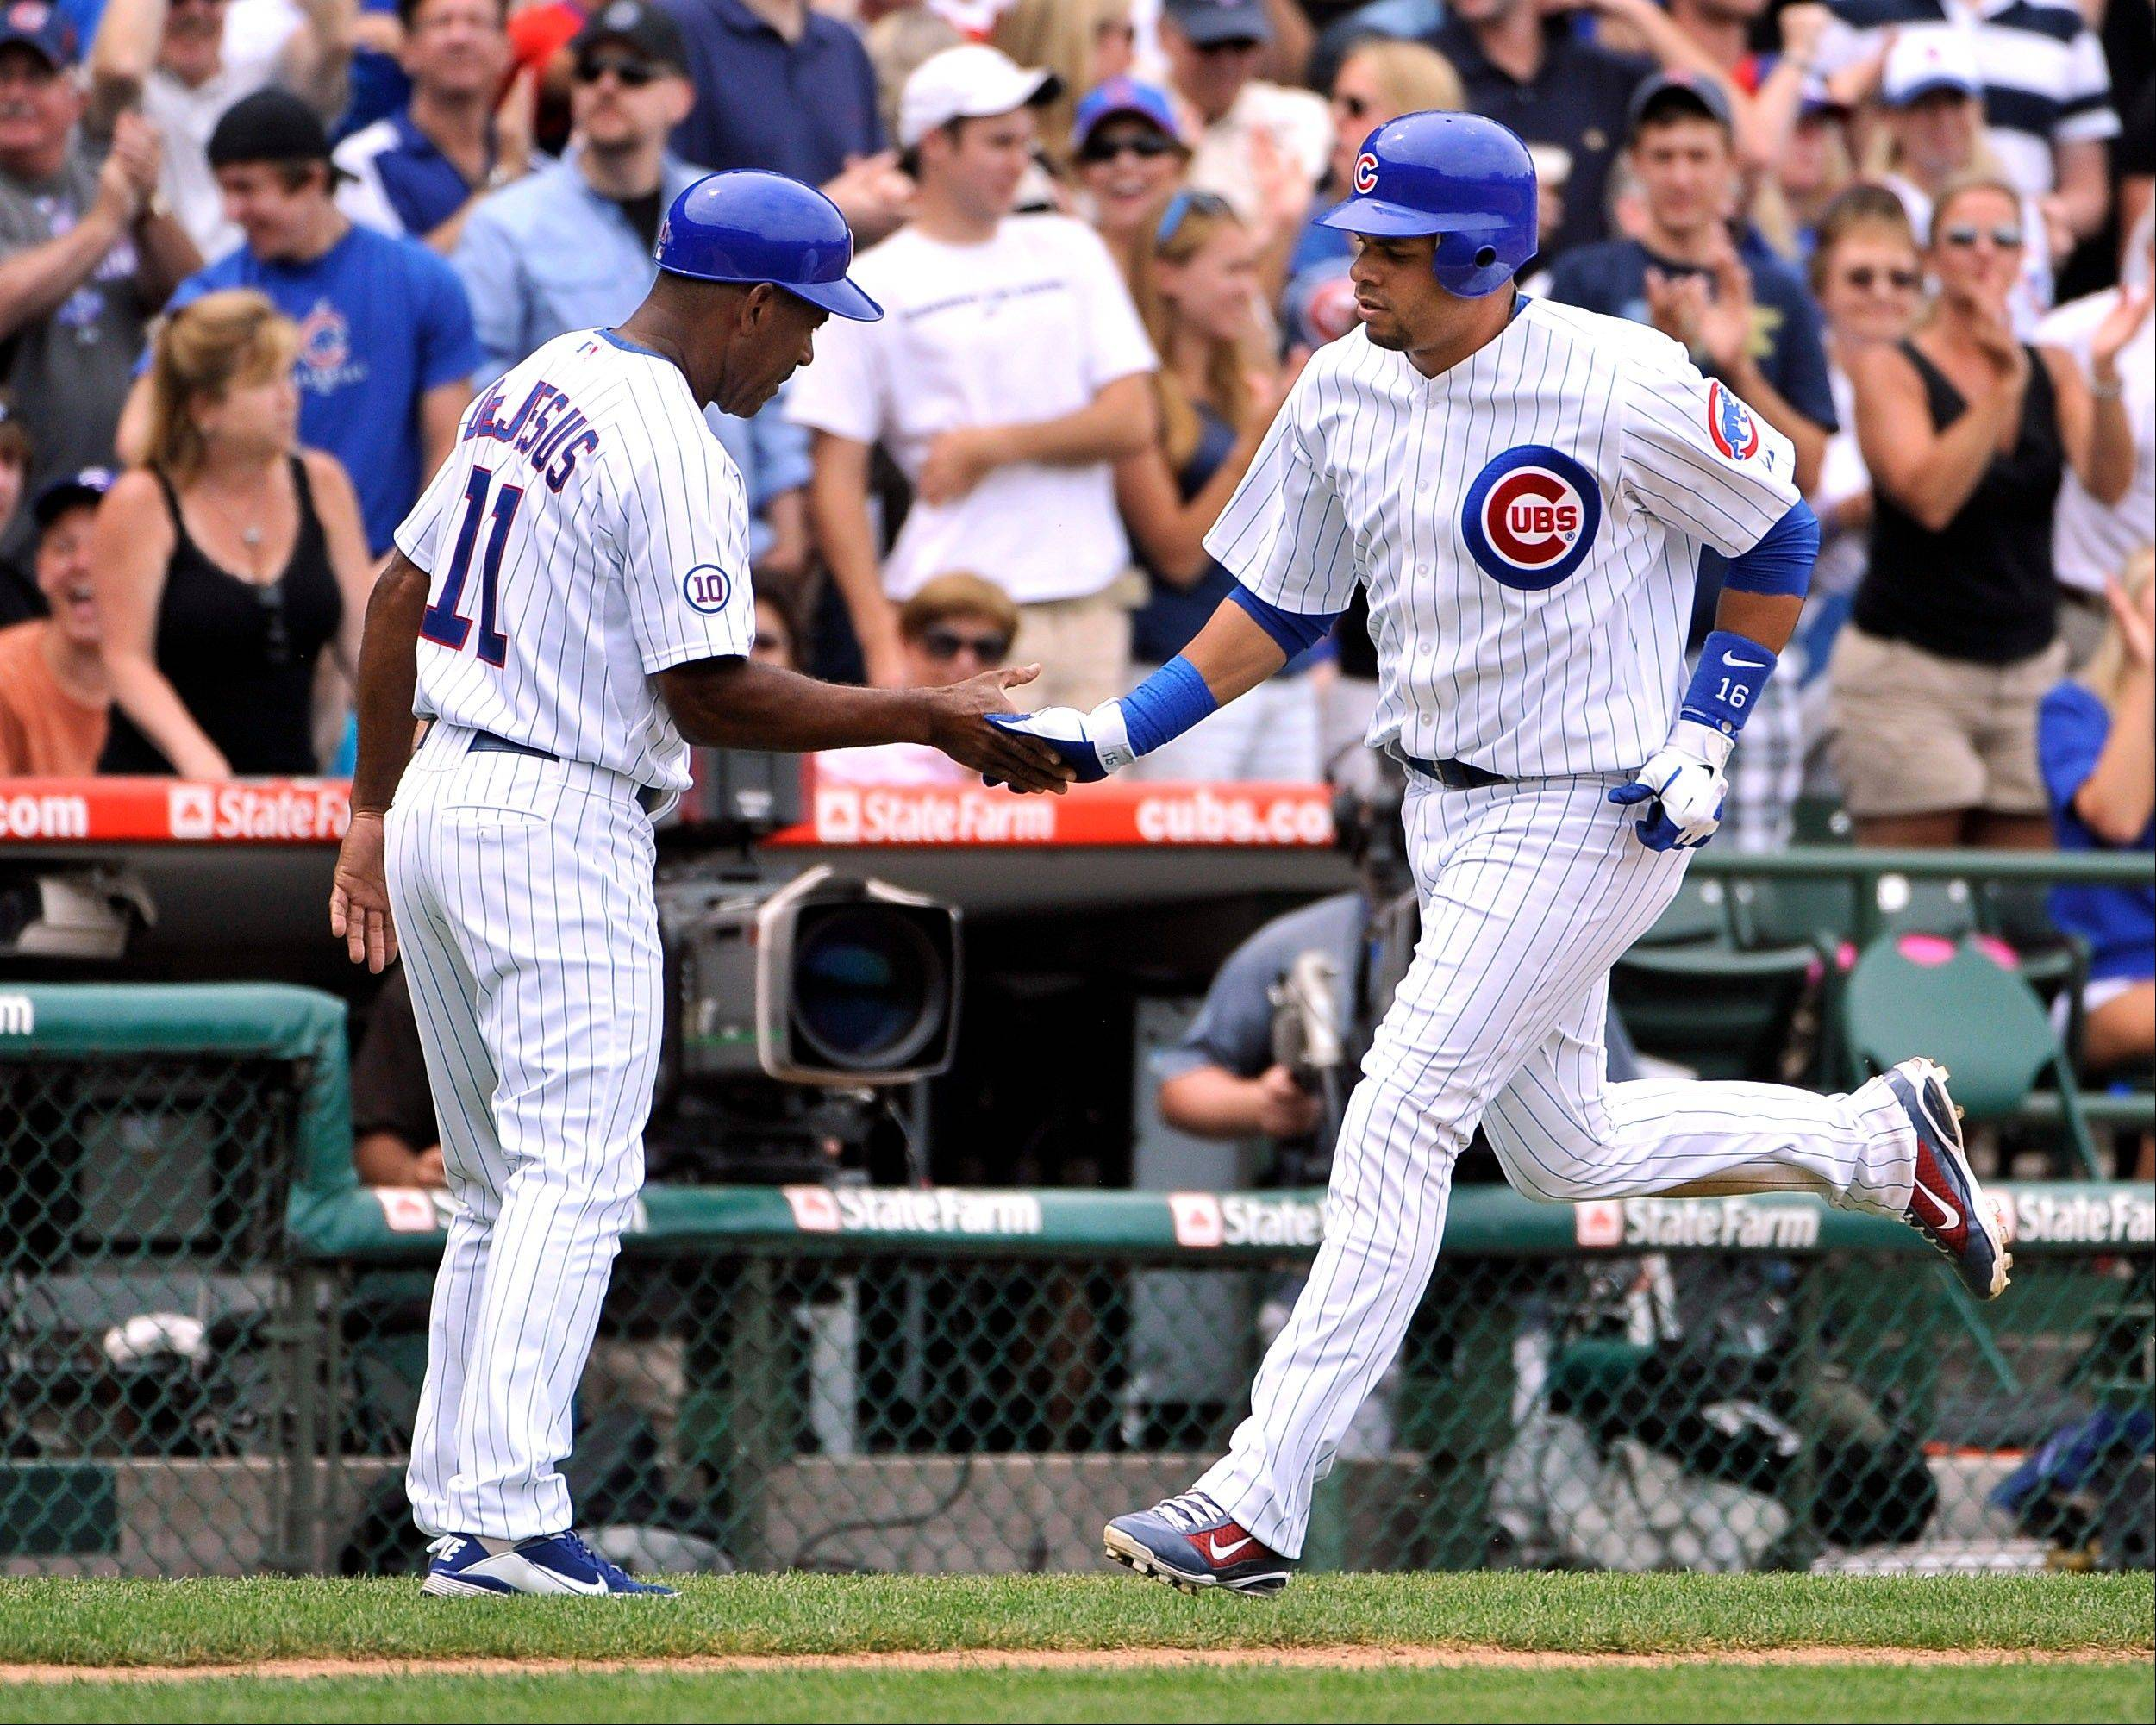 Cubs third-base coach Ivan DeJesus congratulates Aramis Ramirez as he rounds the bases after hitting a two-run homer Sunday.